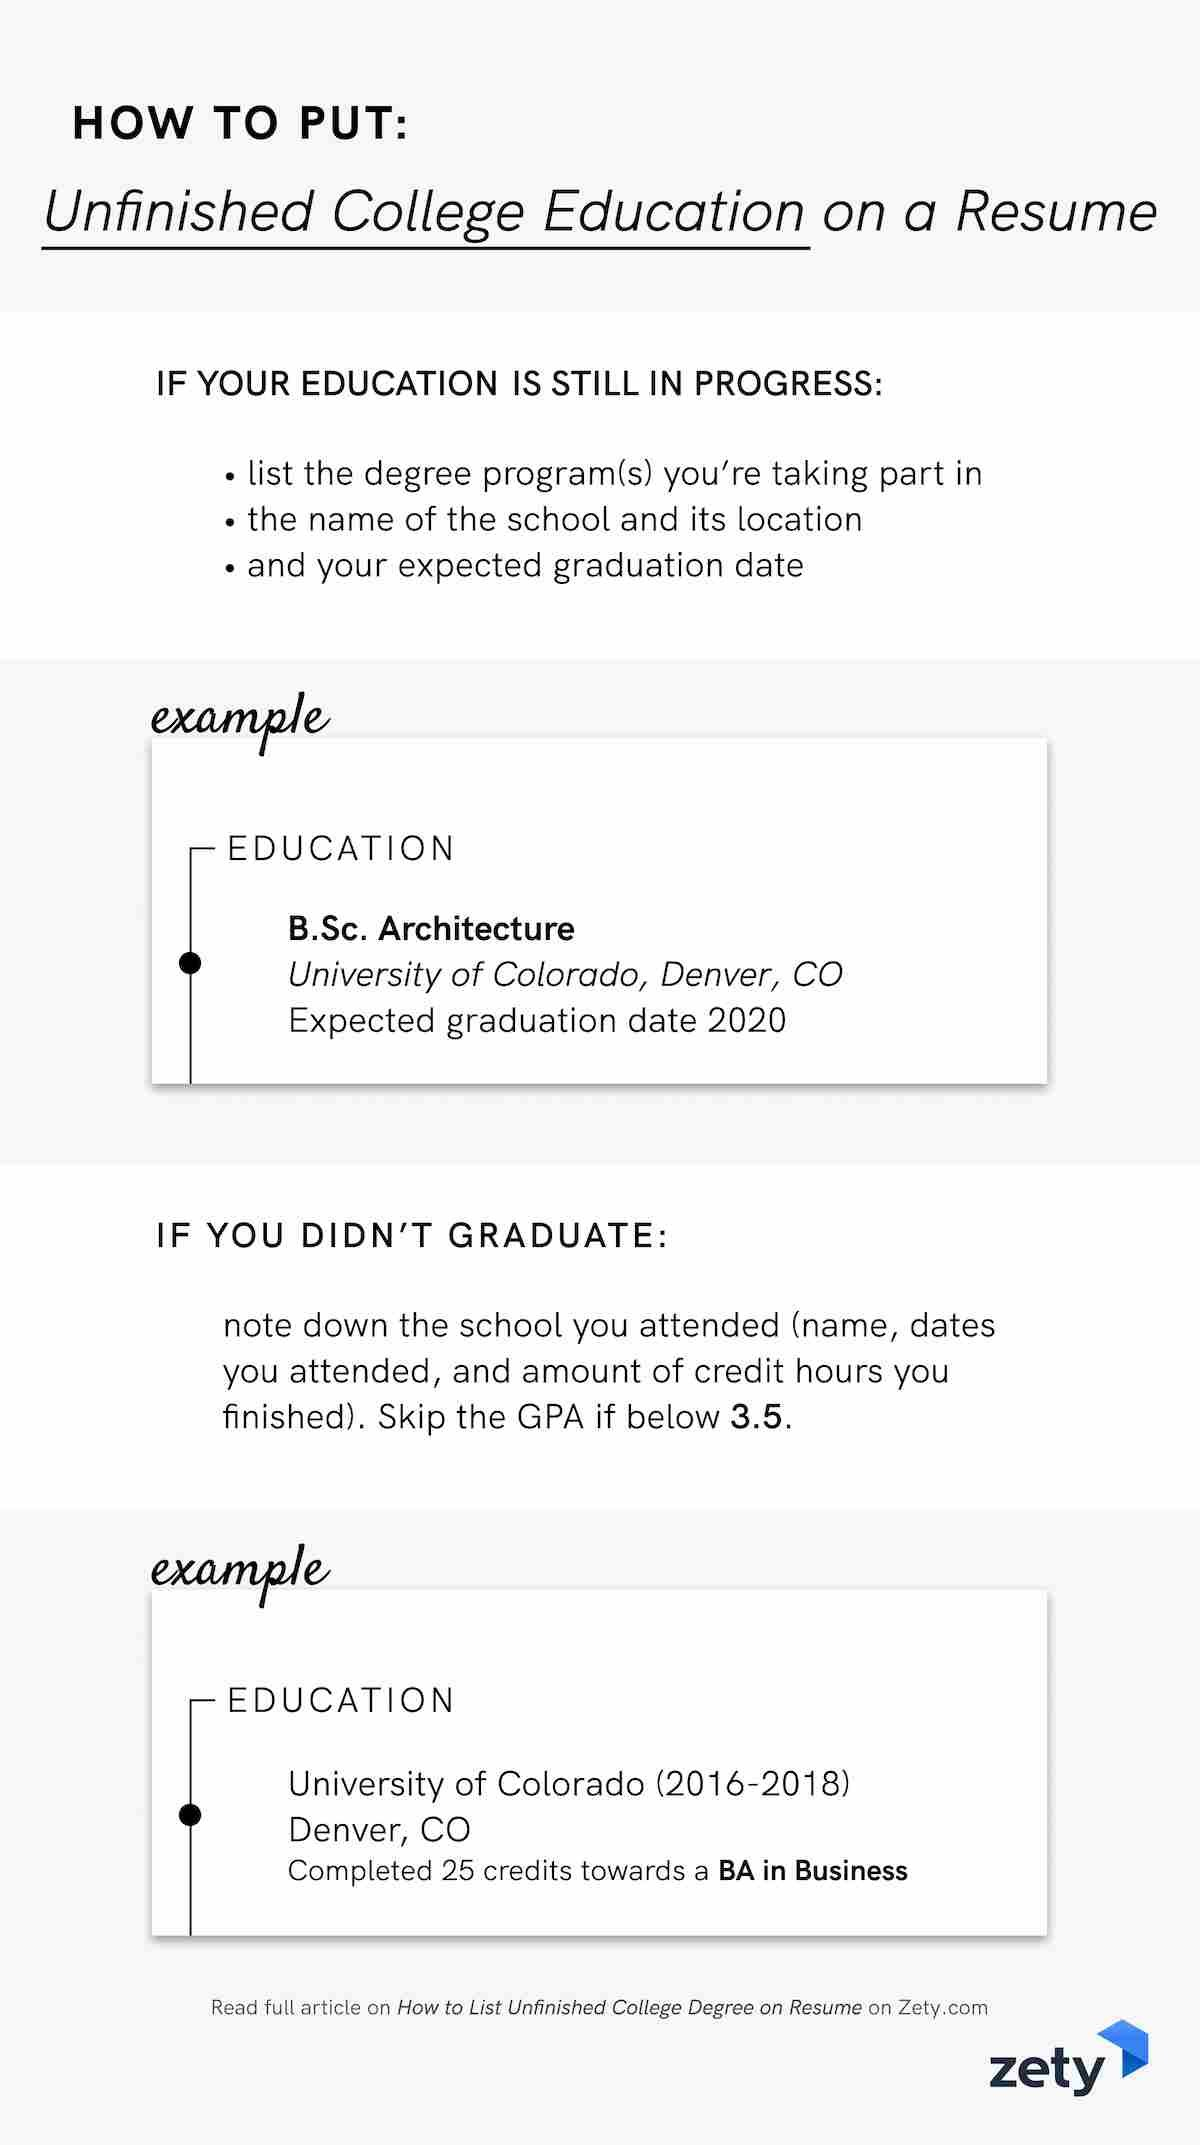 Should i include incomplete education on my resume best personal statement editor for hire online